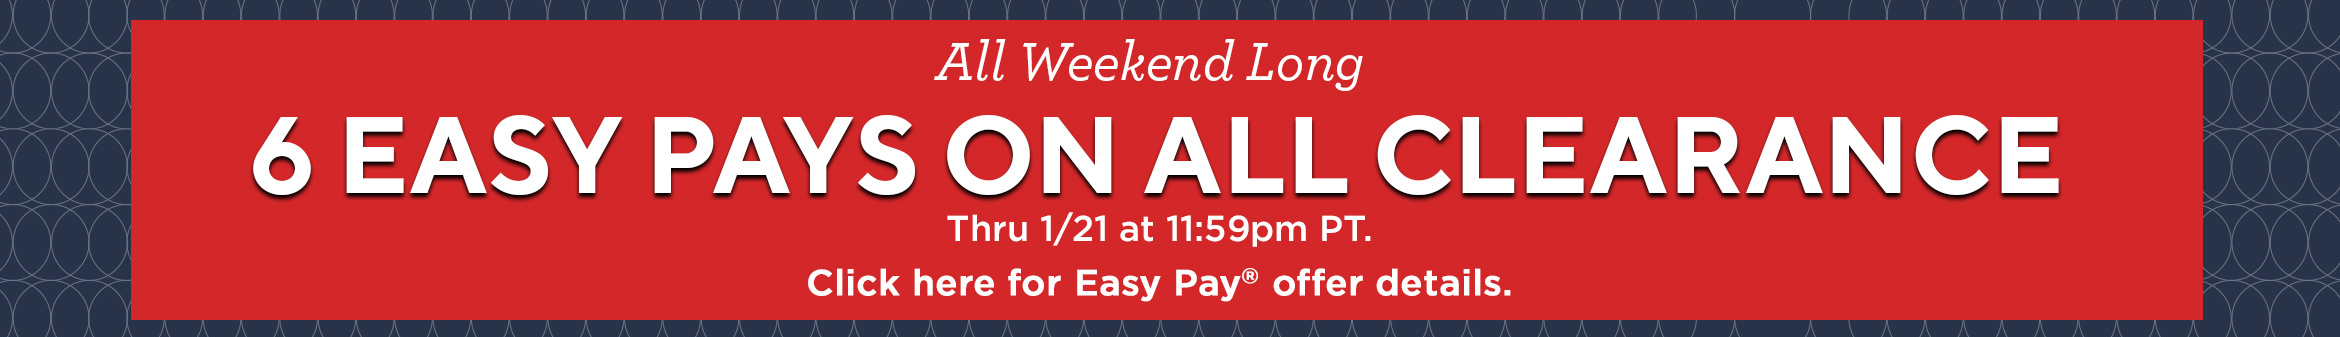 All Weekend Long. 6 Easy Pays on ALL Clearance Thru 1/21 at 11:59pm PT.   Click here for Easy Pay® offer details.